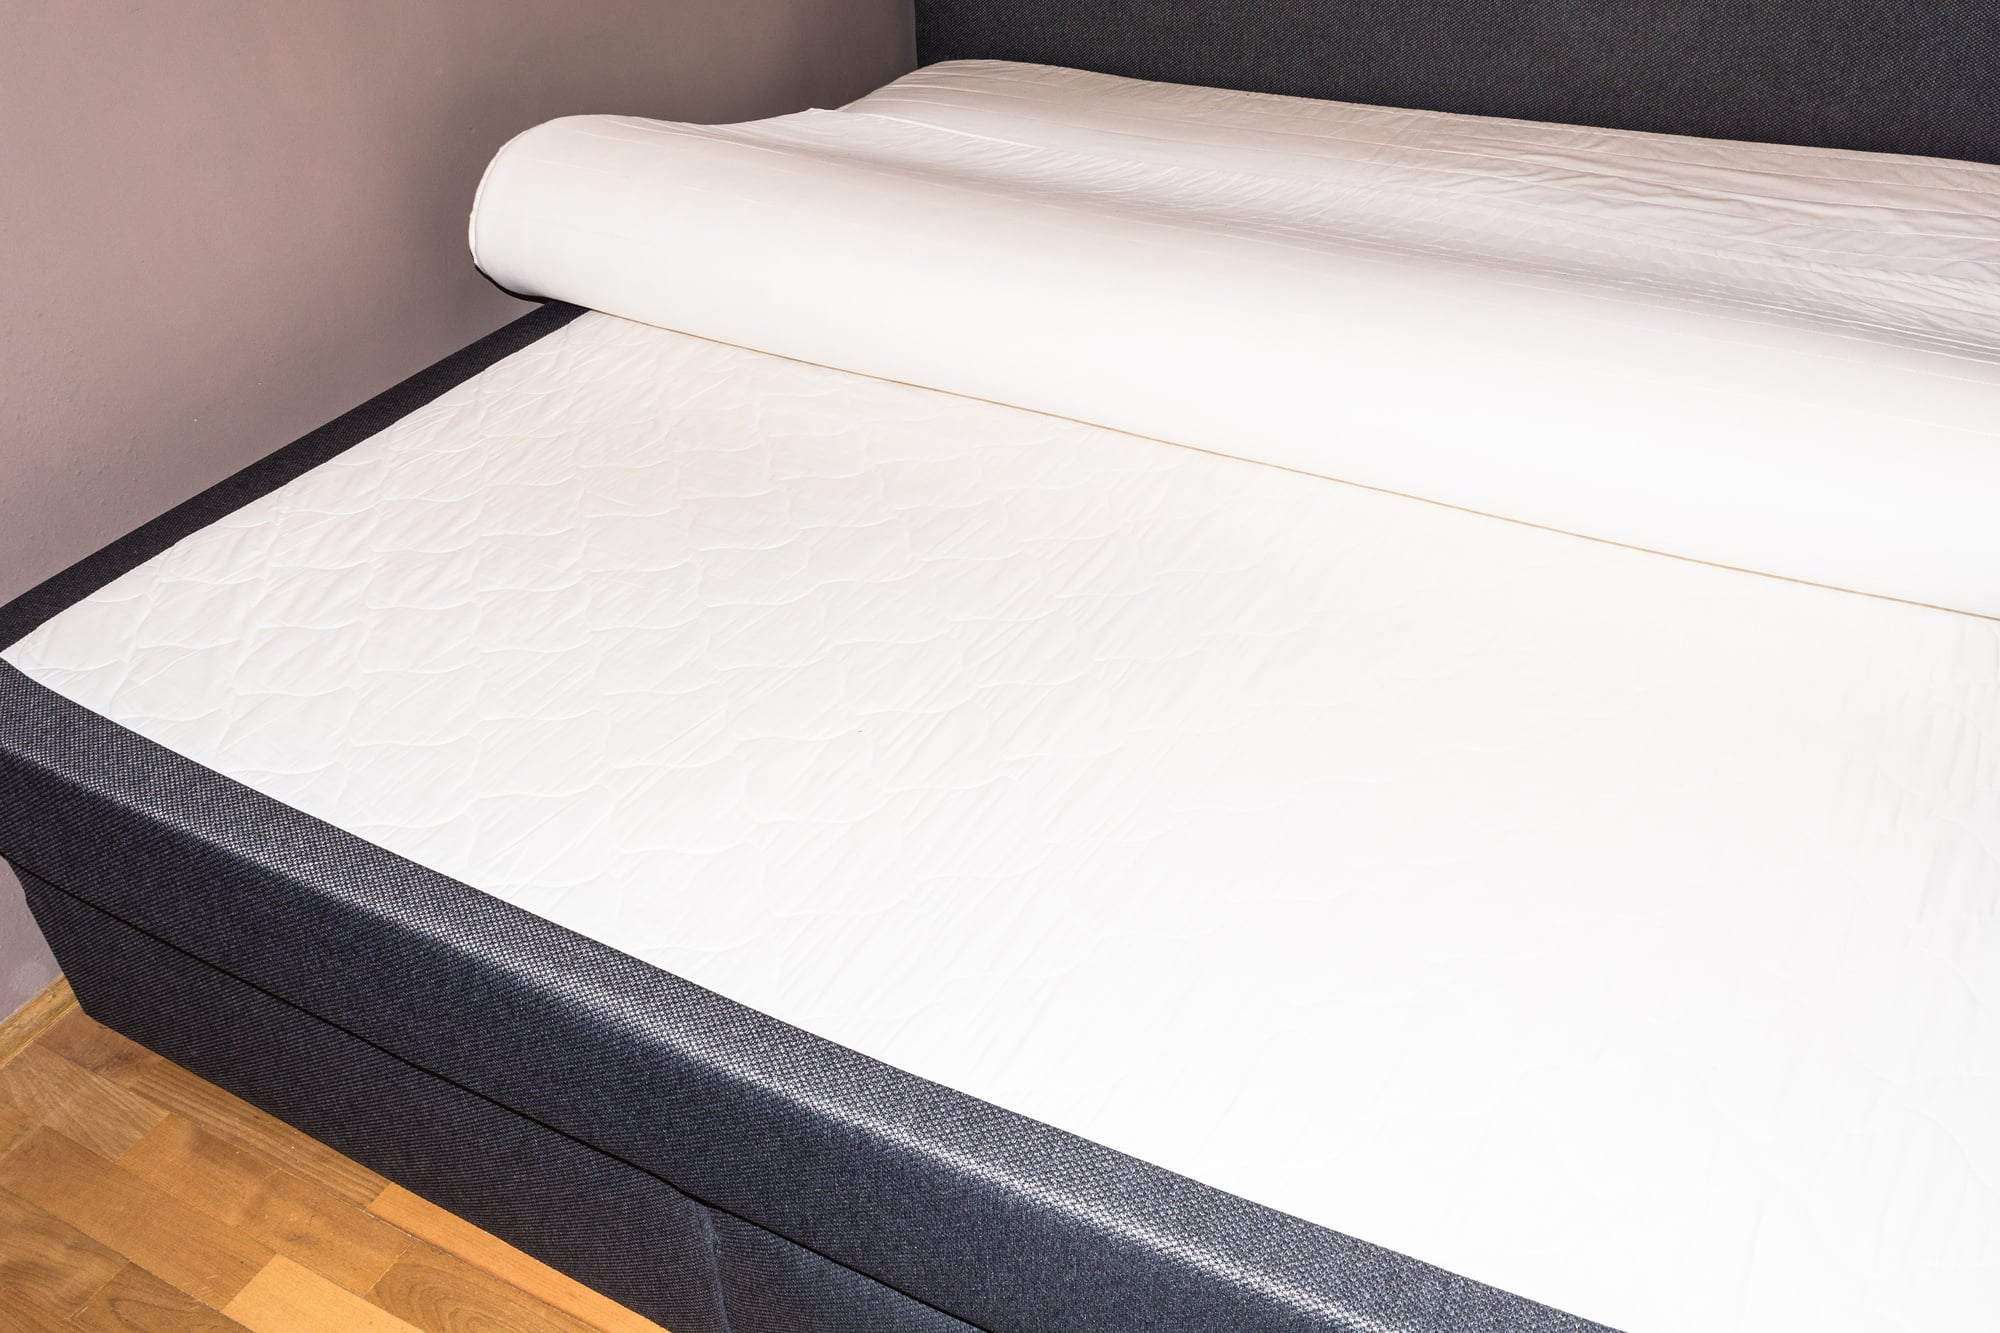 Extra Firm Mattress Topper What Is The Best Mattress Topper For Side Sleepers In 2019 Top 5